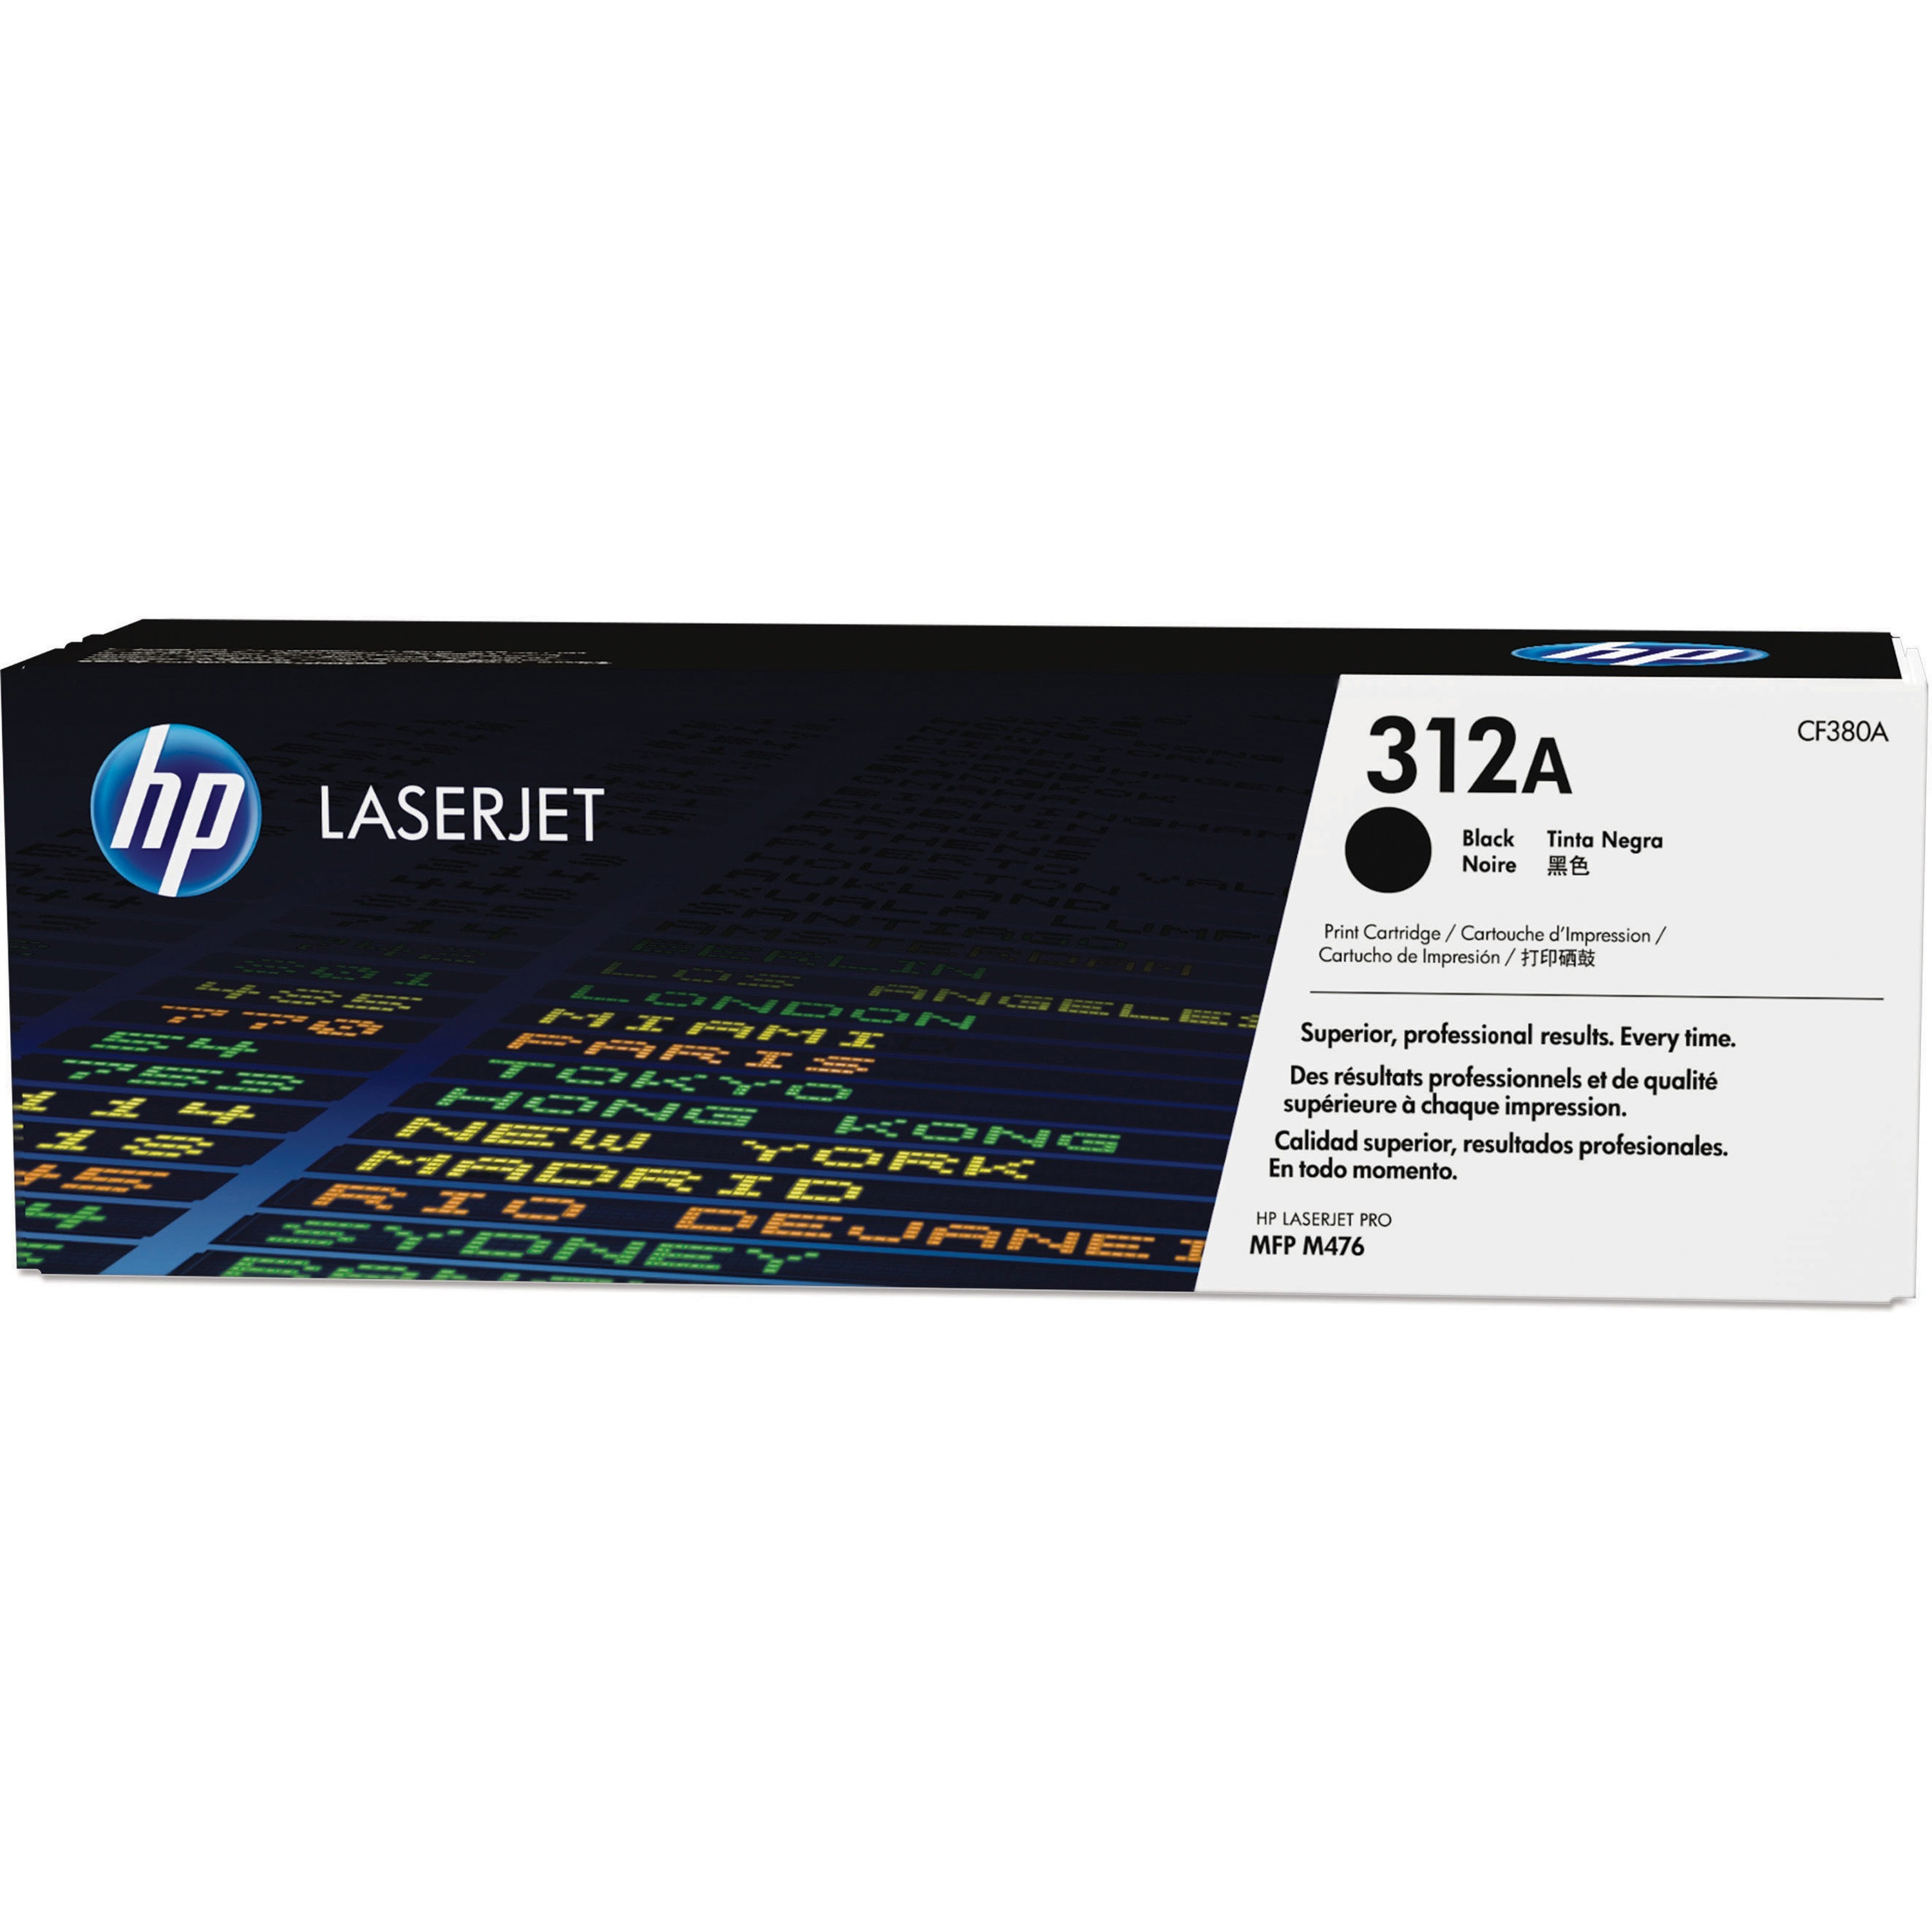 HP 312A Toner Cartridge - Black - Laser